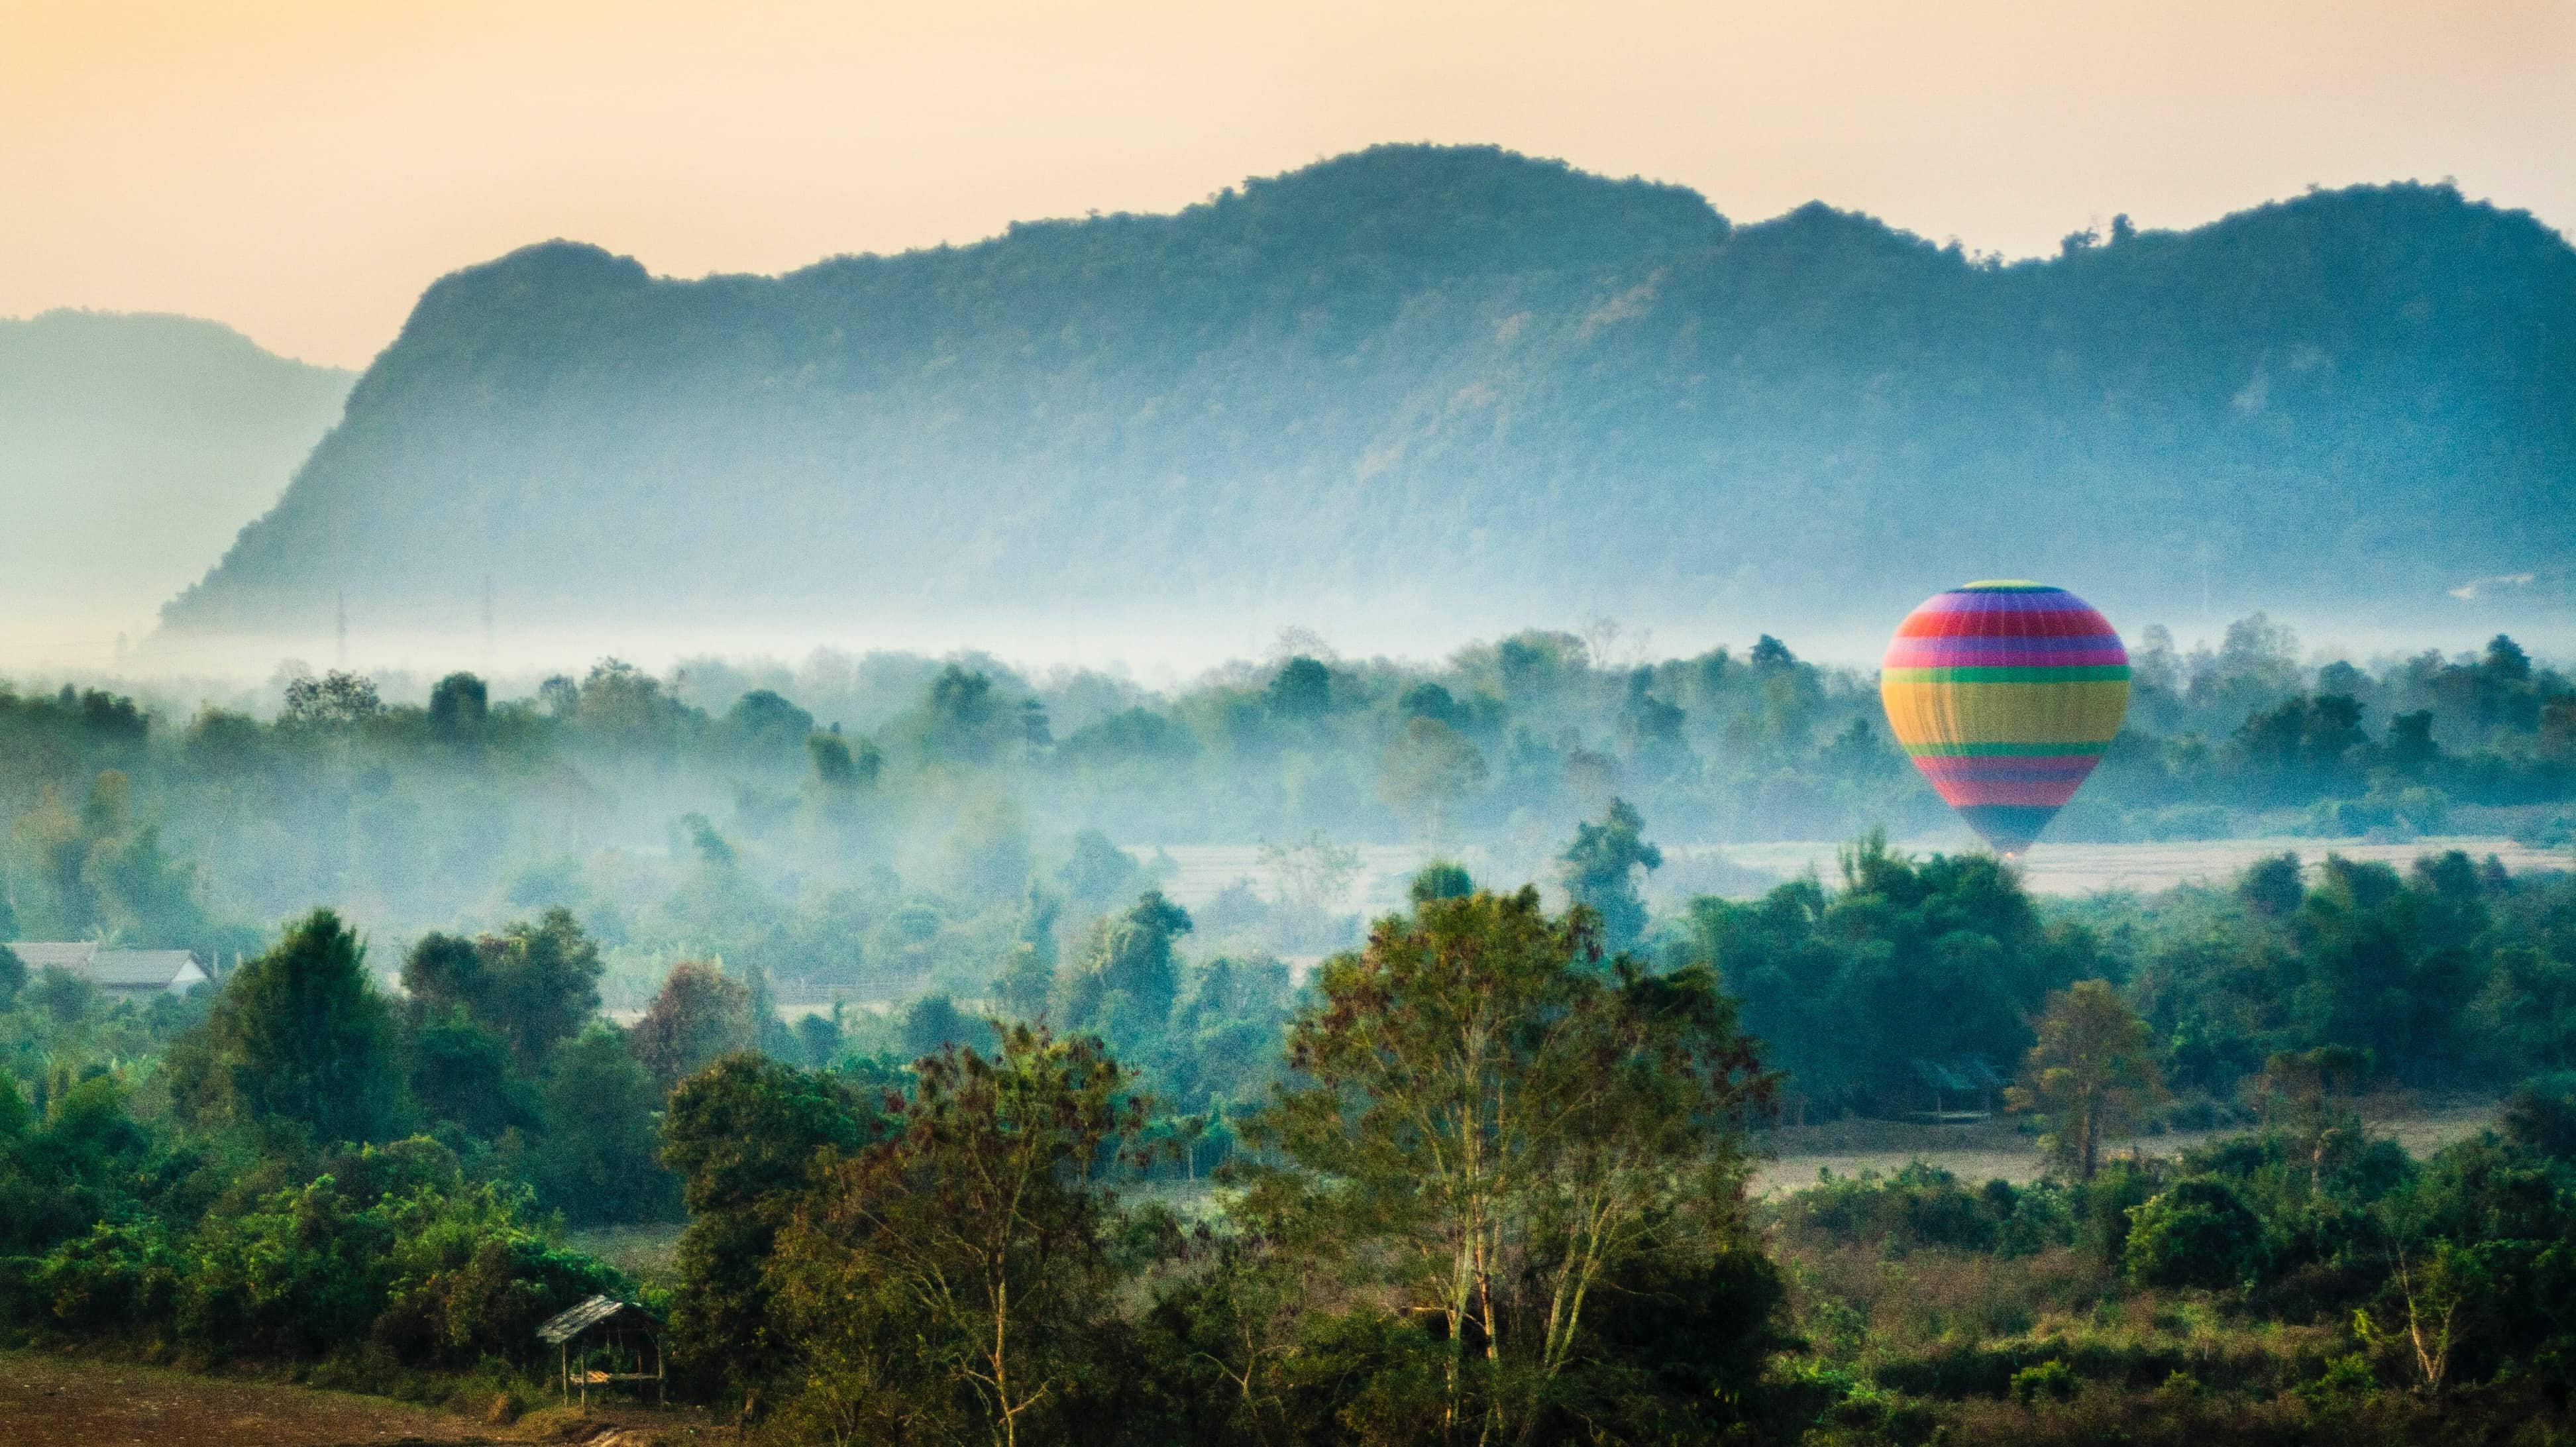 hot air baloon in Vang Vieng, instagrammable places in Laos